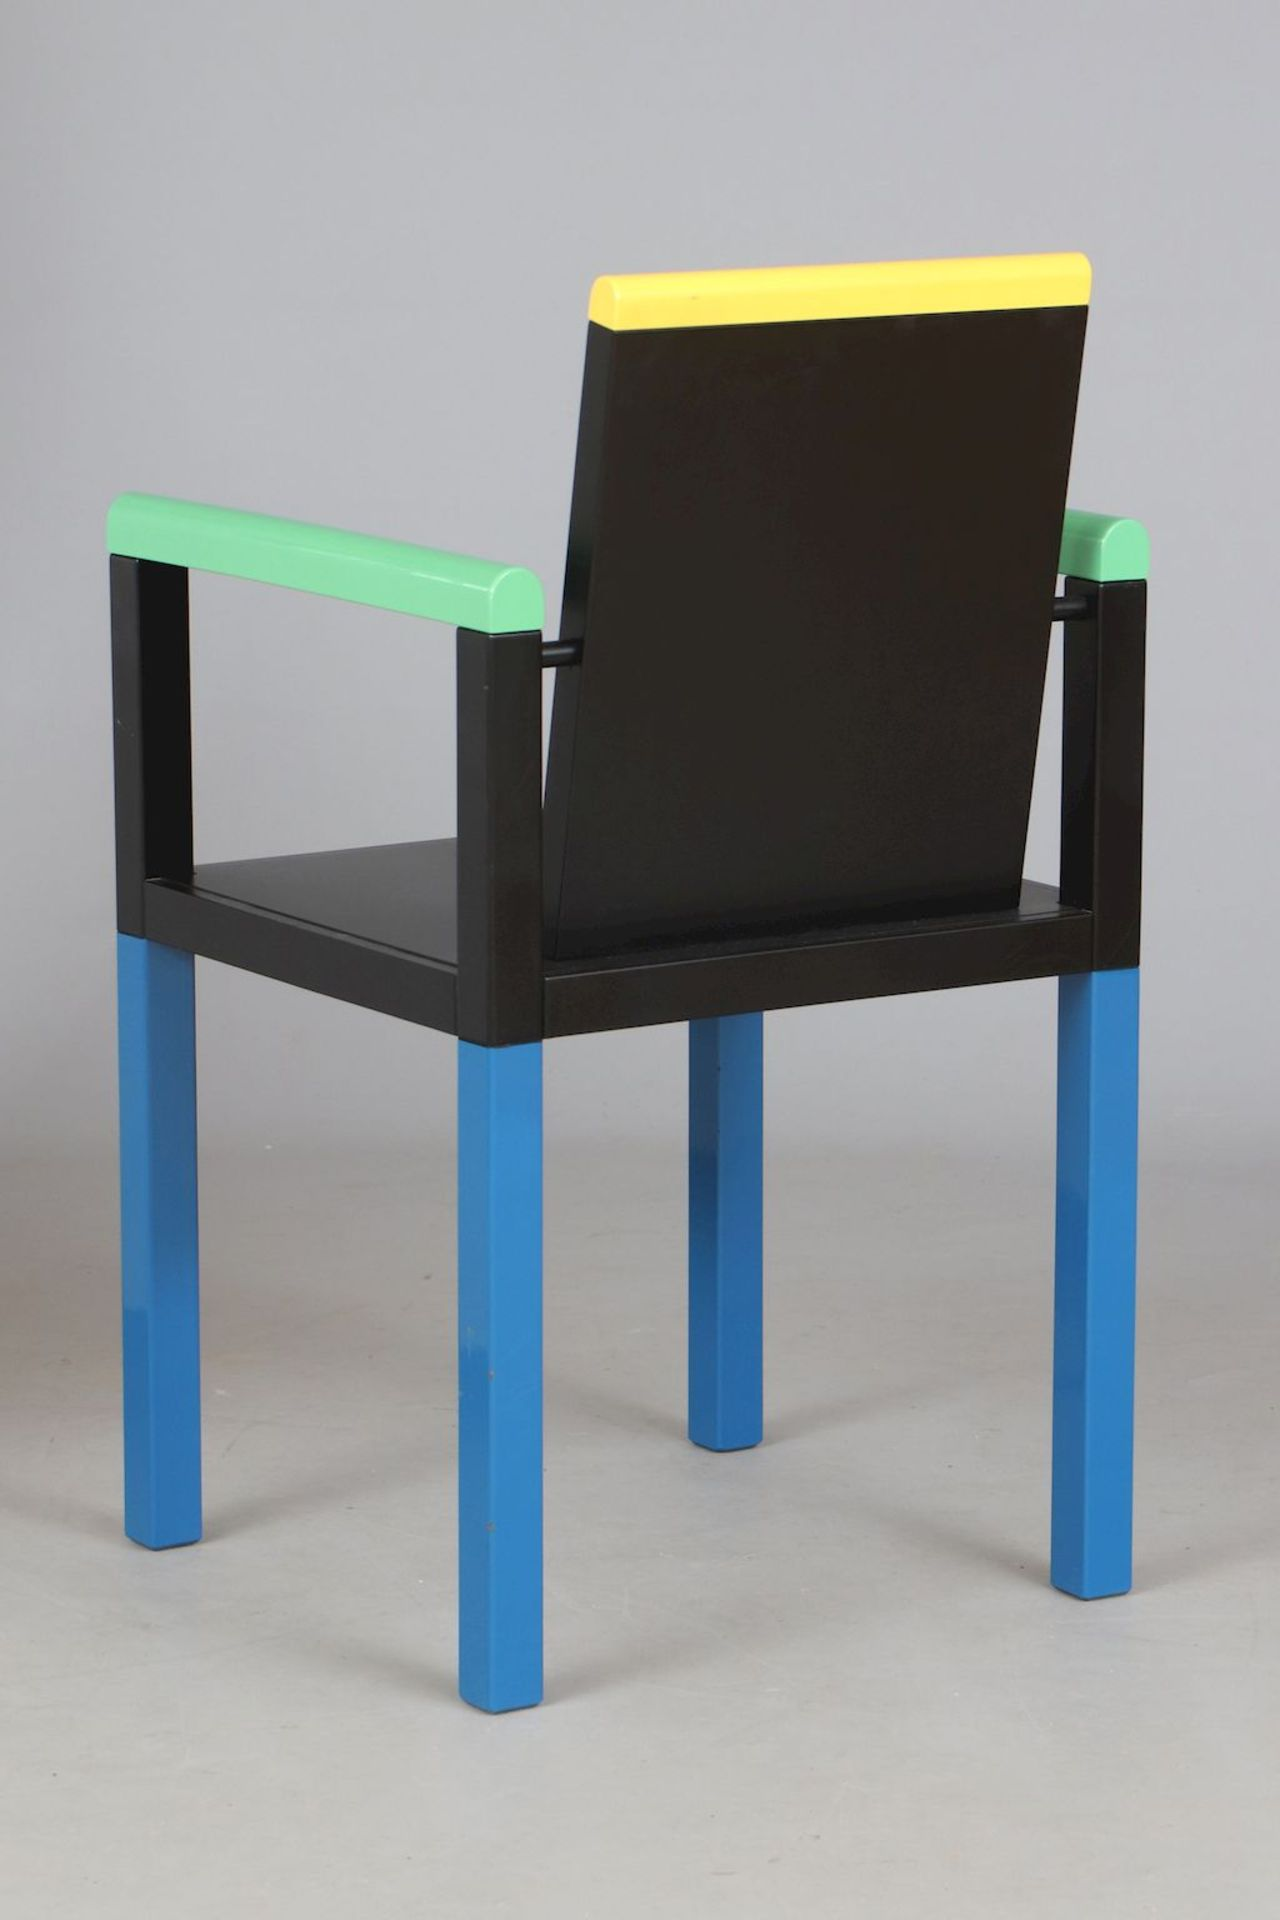 GEORGE JAMES SOWDEN (1942) ¨Palace Chair¨ für MEMPHIS (Milano) - Image 3 of 5